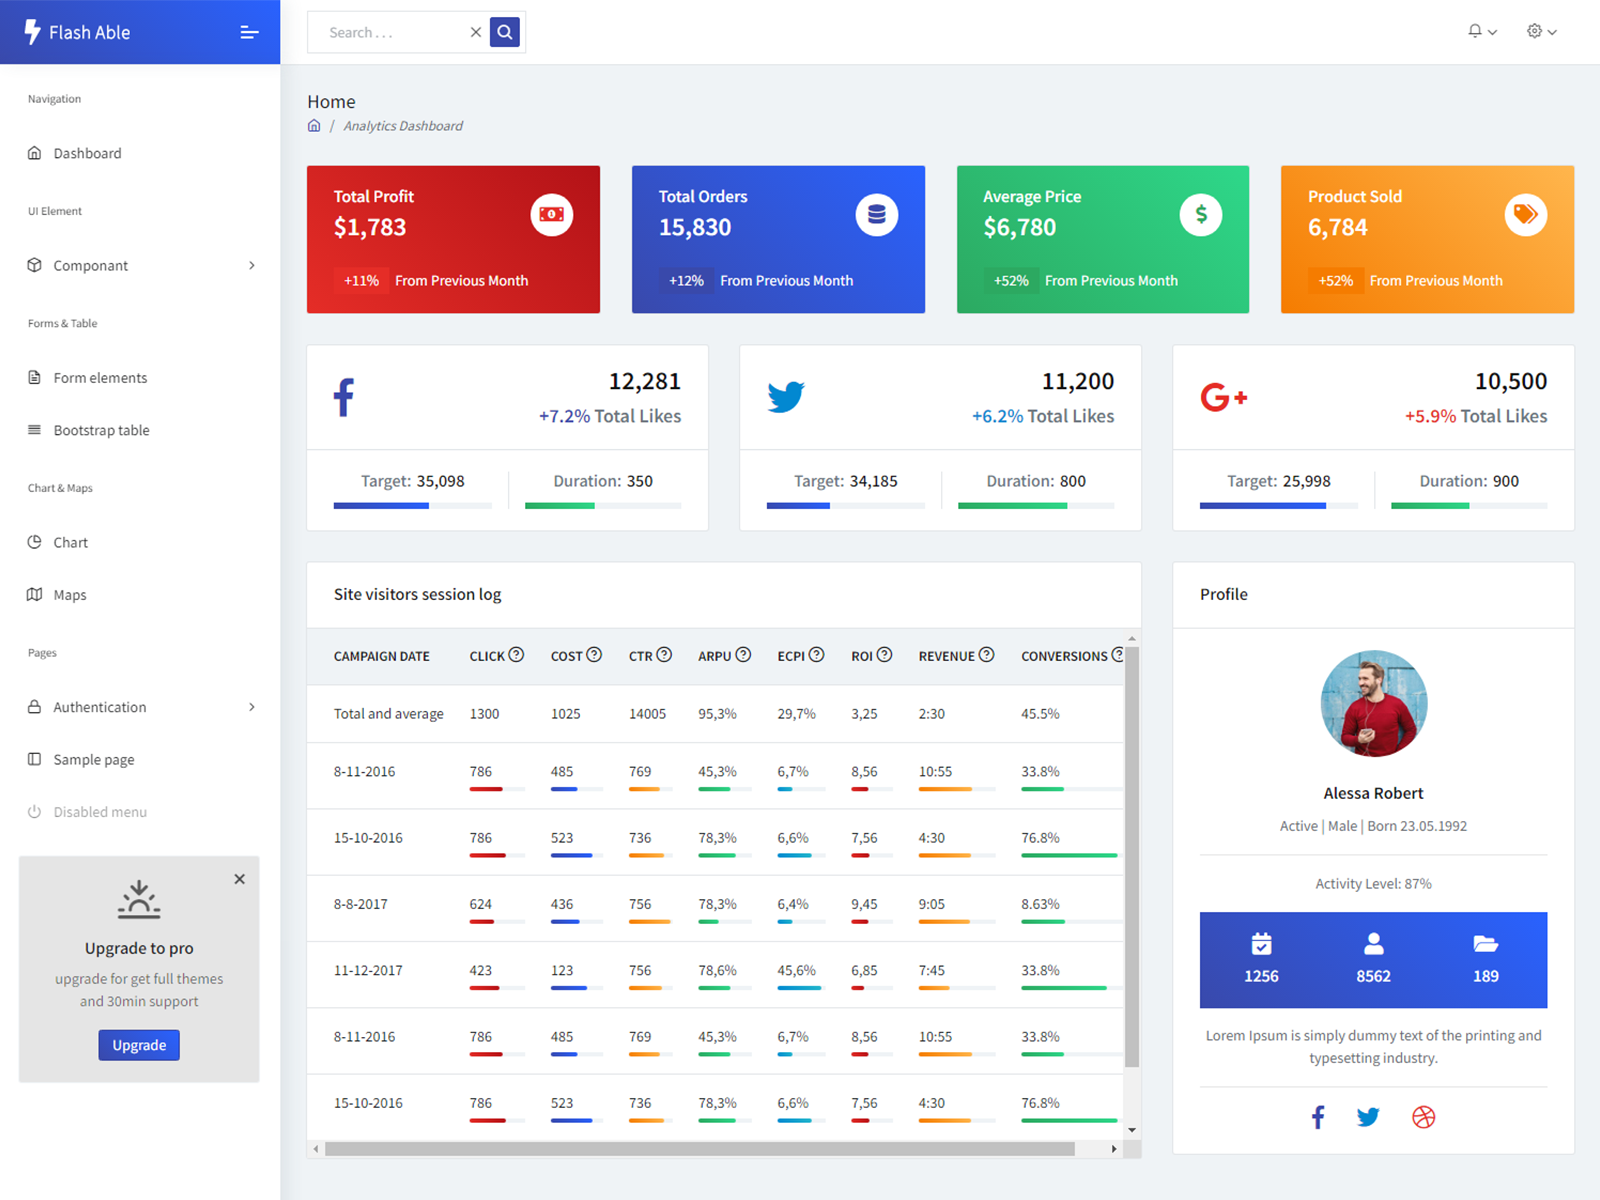 Flash Able Bootstrap Admin Template cover image